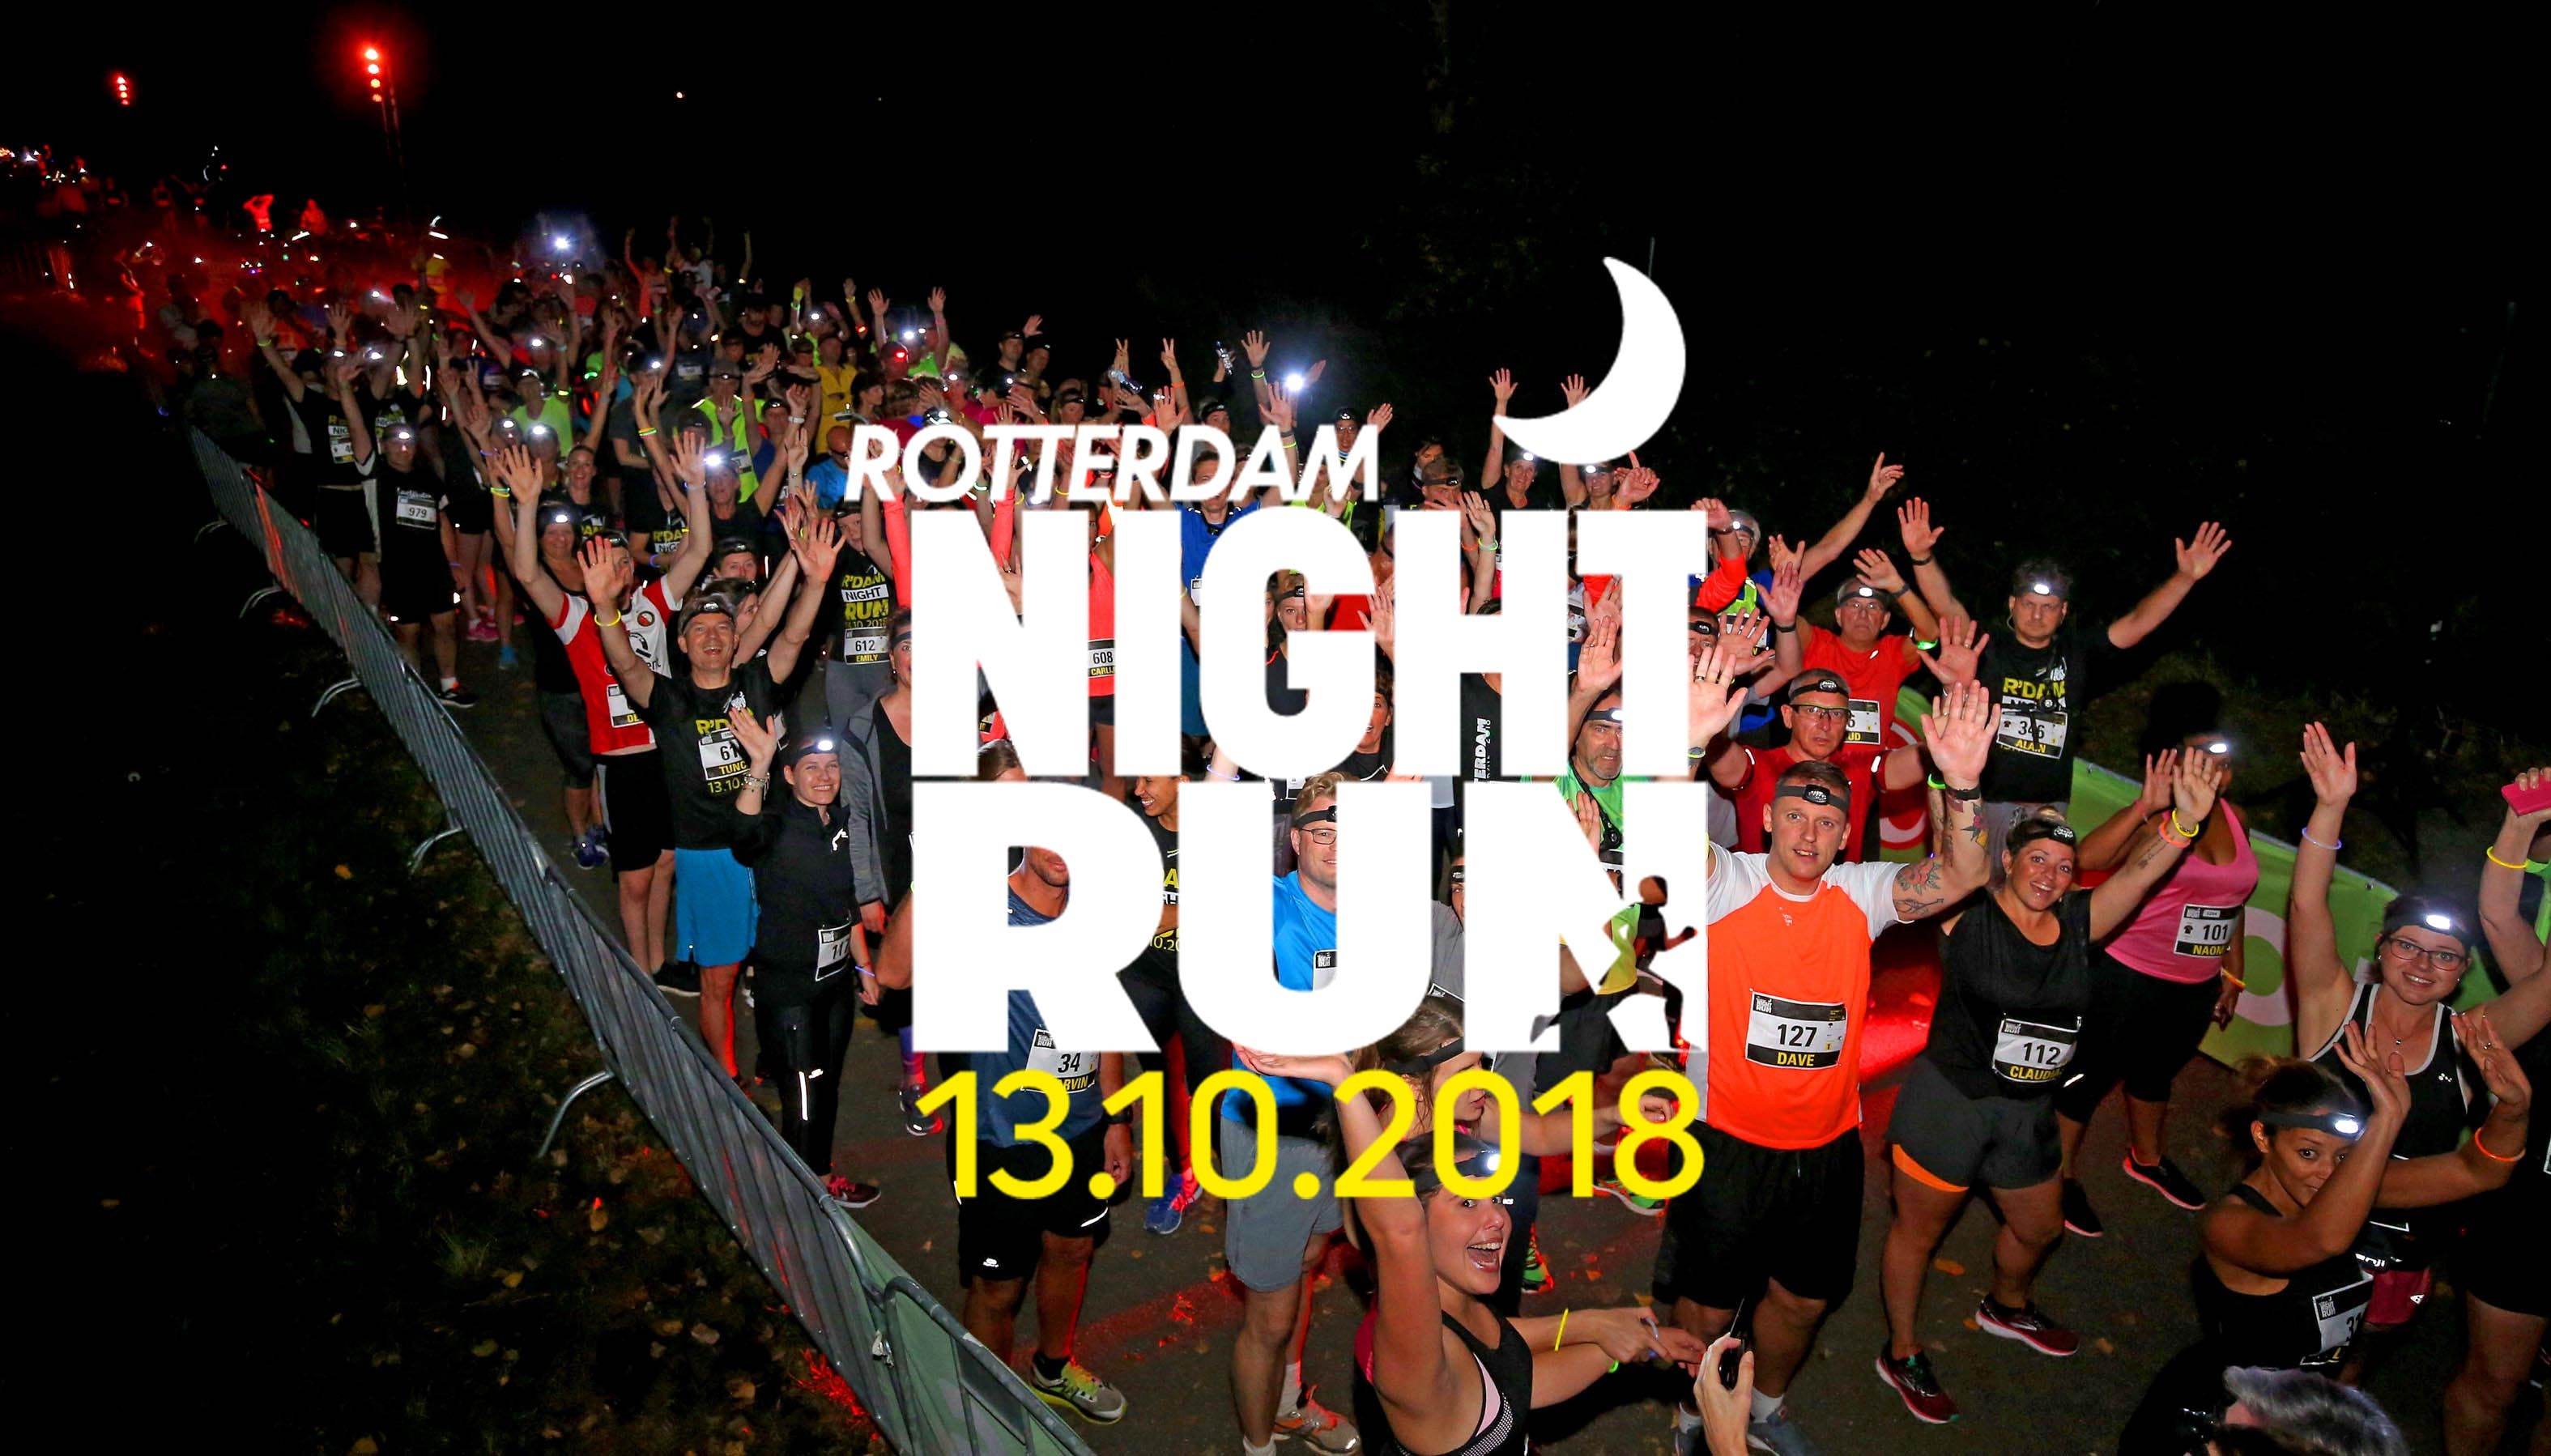 bhRotterdamNightRun06_video.jpg